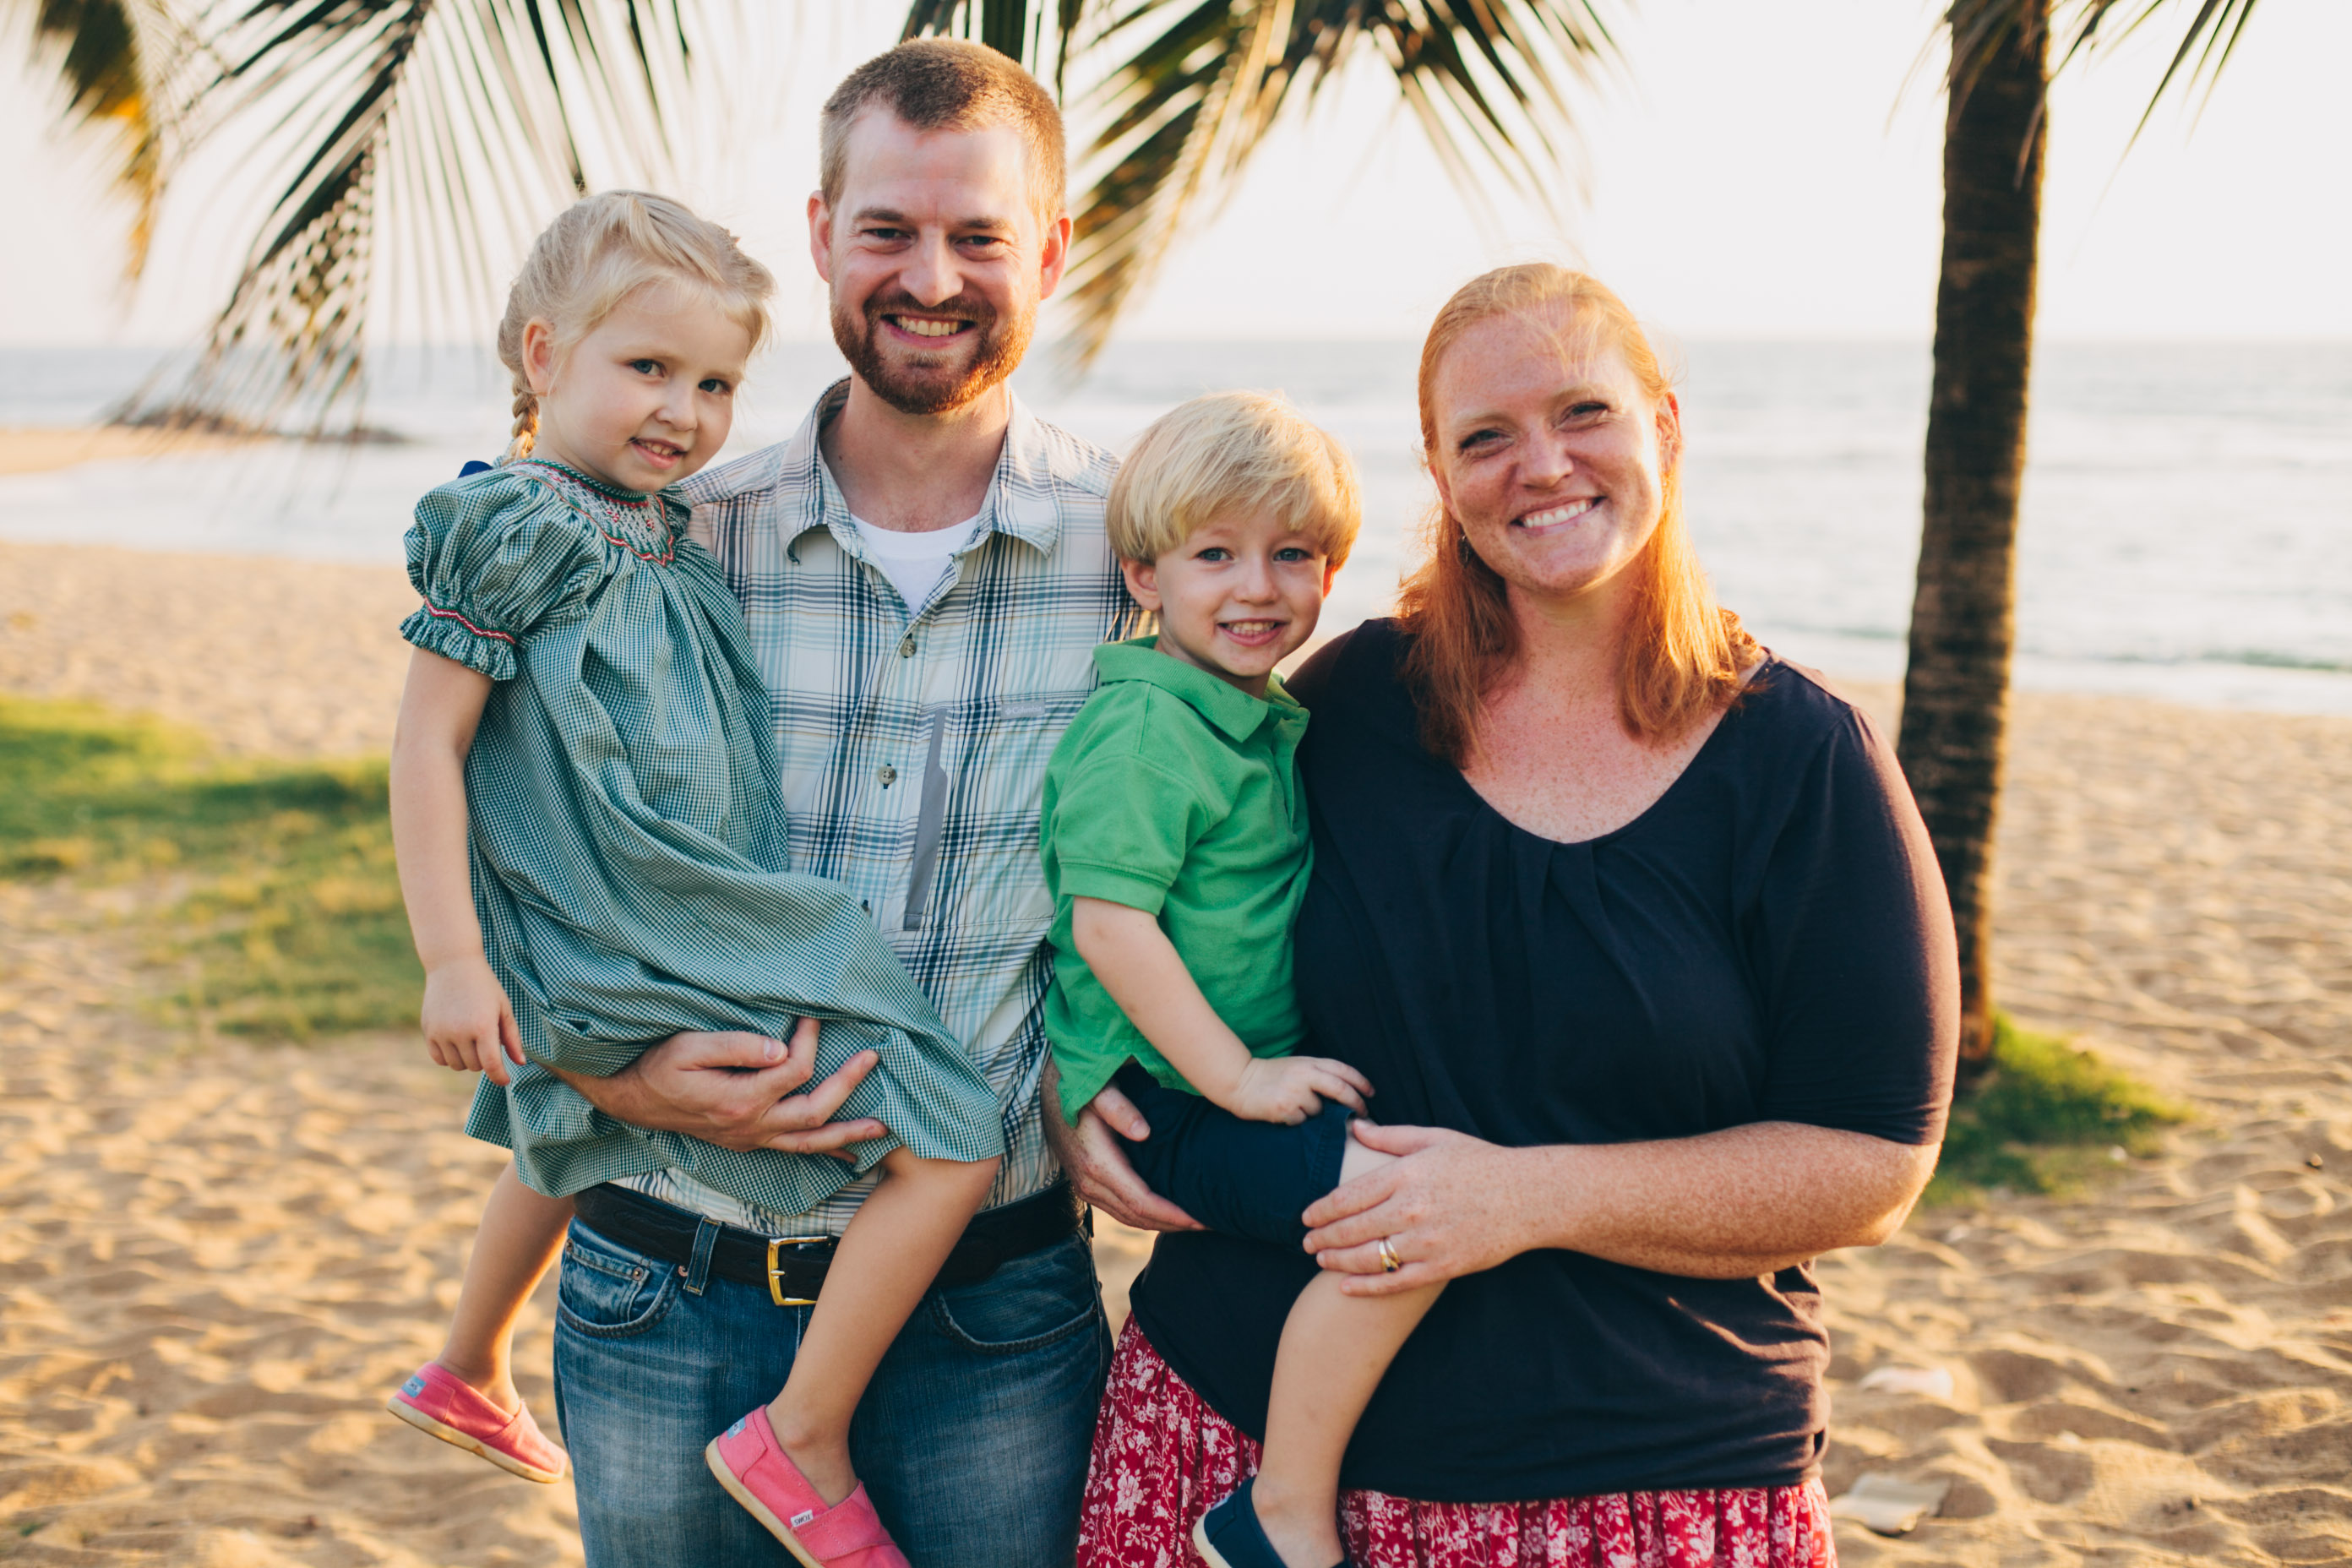 Dr. Kent Brantly and his wife Amber and their children in Liberia before Dr. Brantly was infected with Ebola